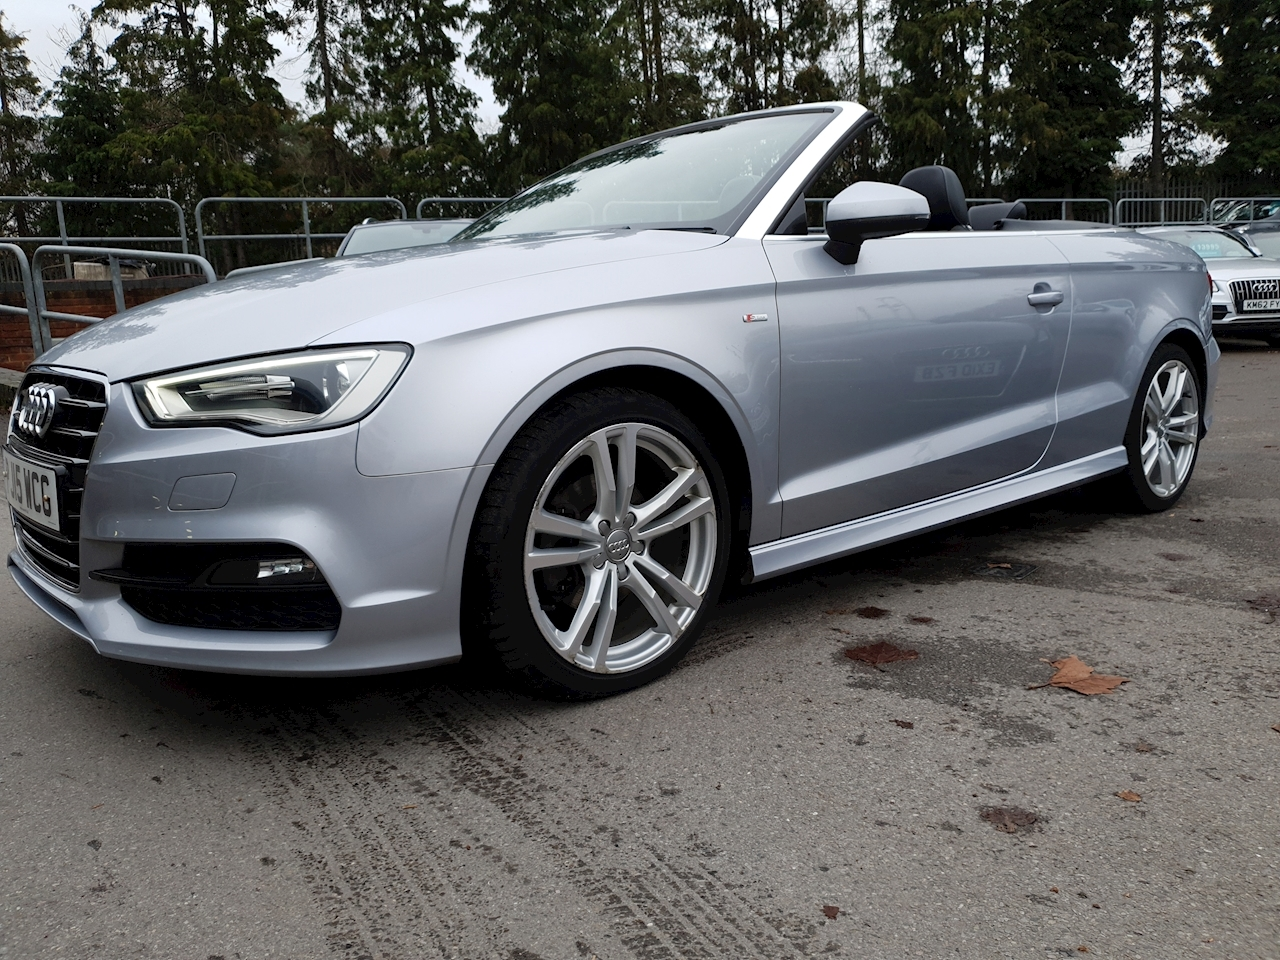 Audi 2.0 TDI S line Cabriolet (£3520 OF FACTORY OPTIONS) 2dr Diesel S Tronic (122 g/km, 148 bhp)